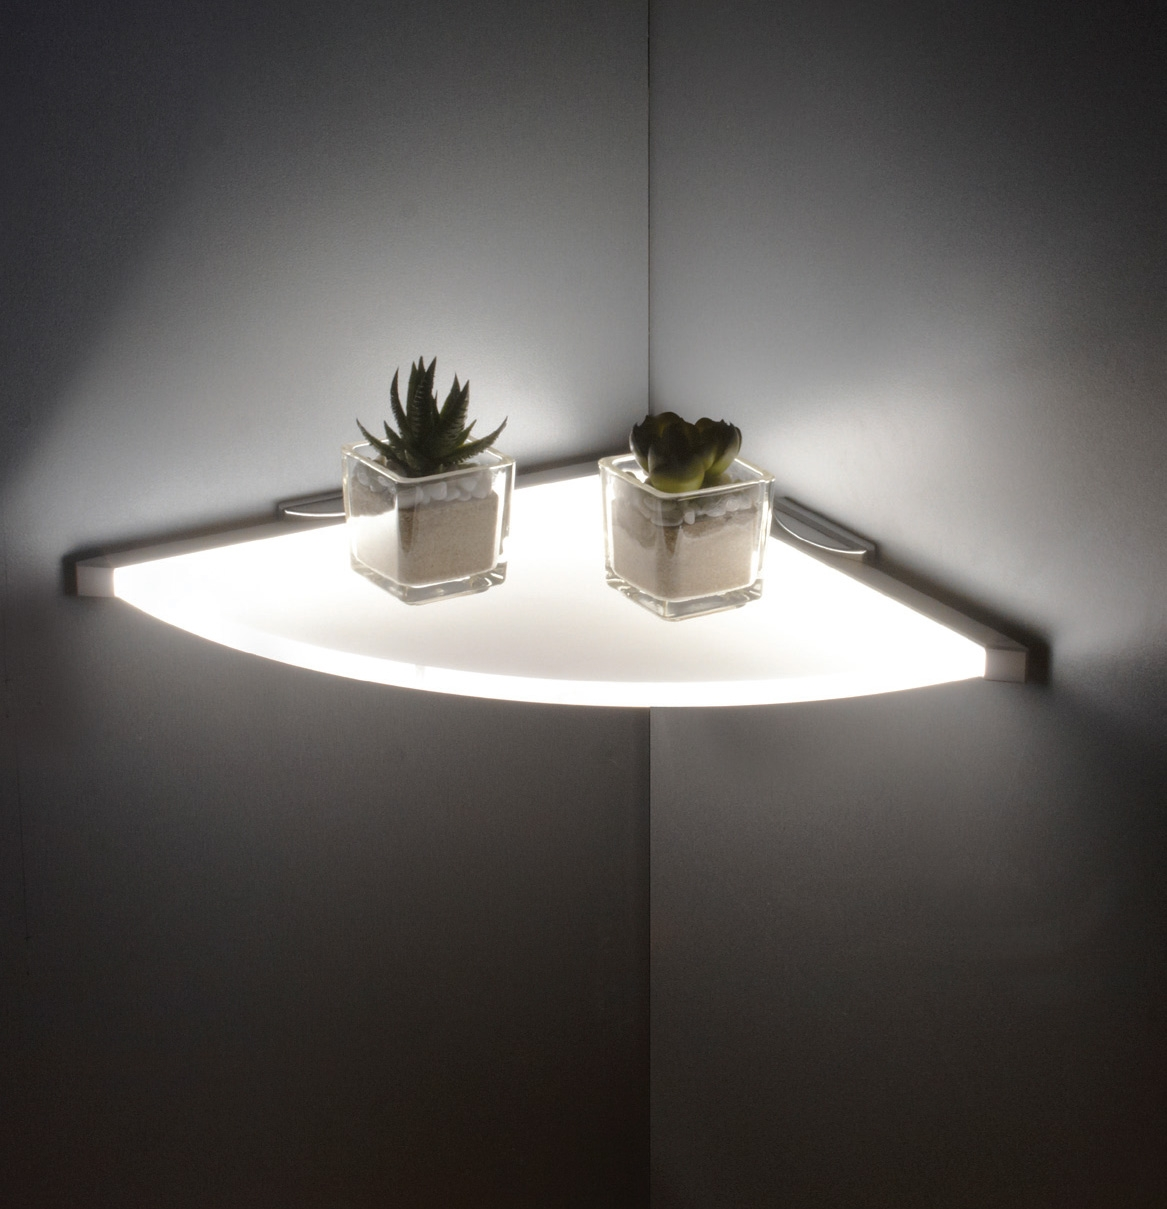 Sycamore Lighting Products Inside Illuminated Glass Shelves (View 10 of 15)